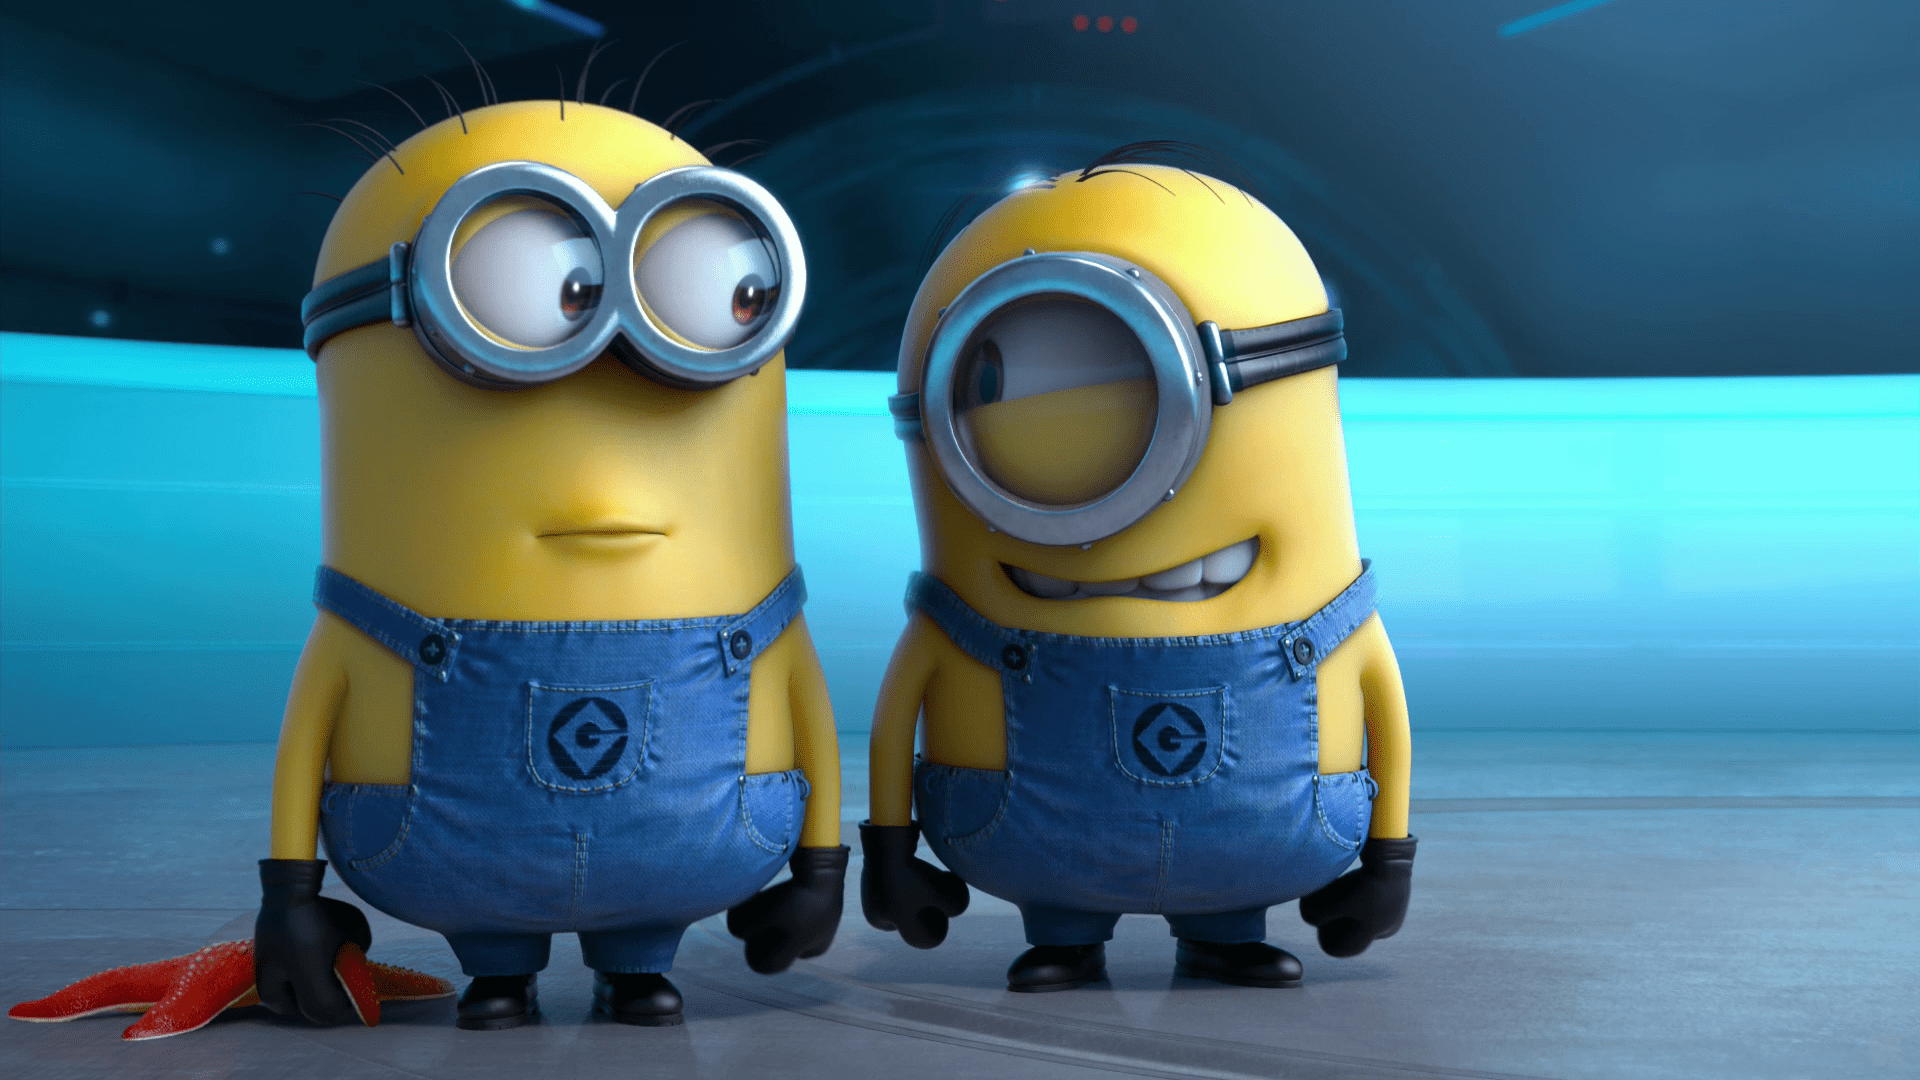 despicable me minions wallpapers - photo #17